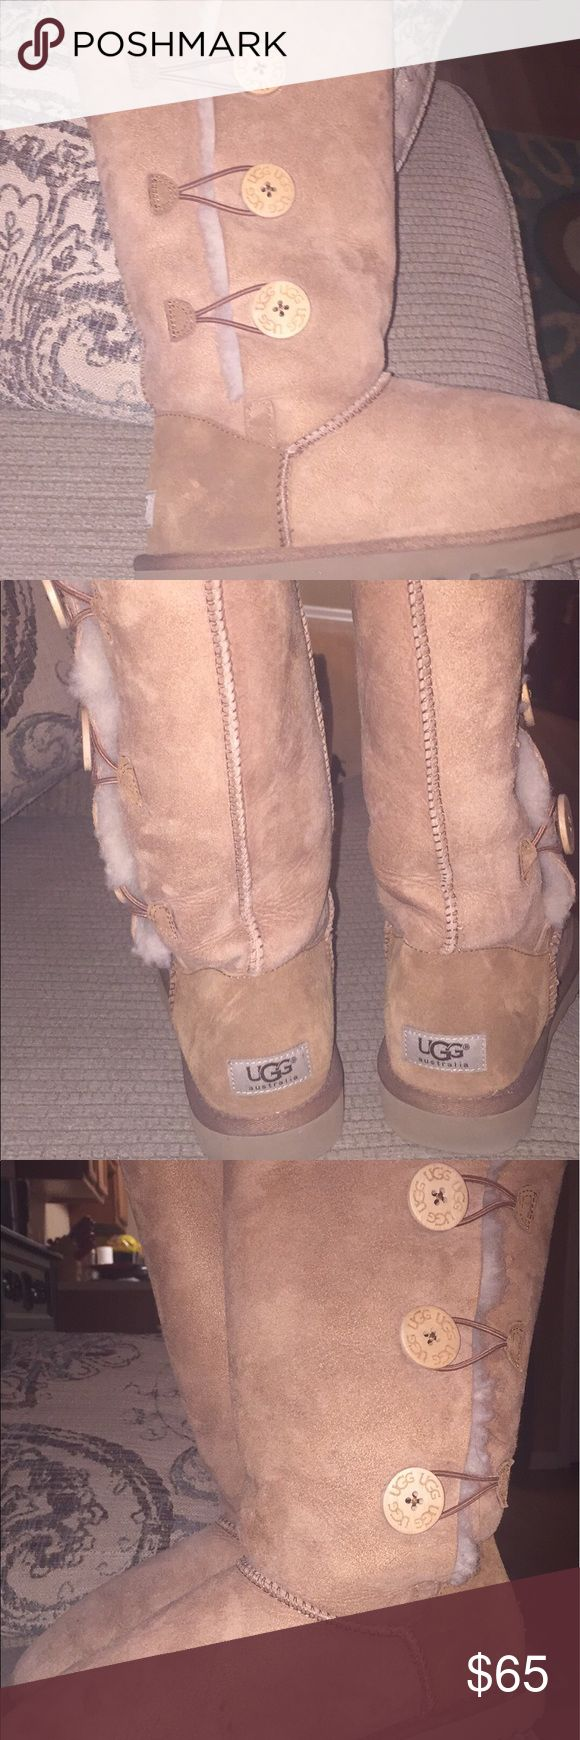 Authentic Australian UGGS These are authentic triple button UGG boots. Used a few times, but in pretty good condition. Has a minor stain on the front, but it's barely noticeable! UGG Shoes Winter & Rain Boots